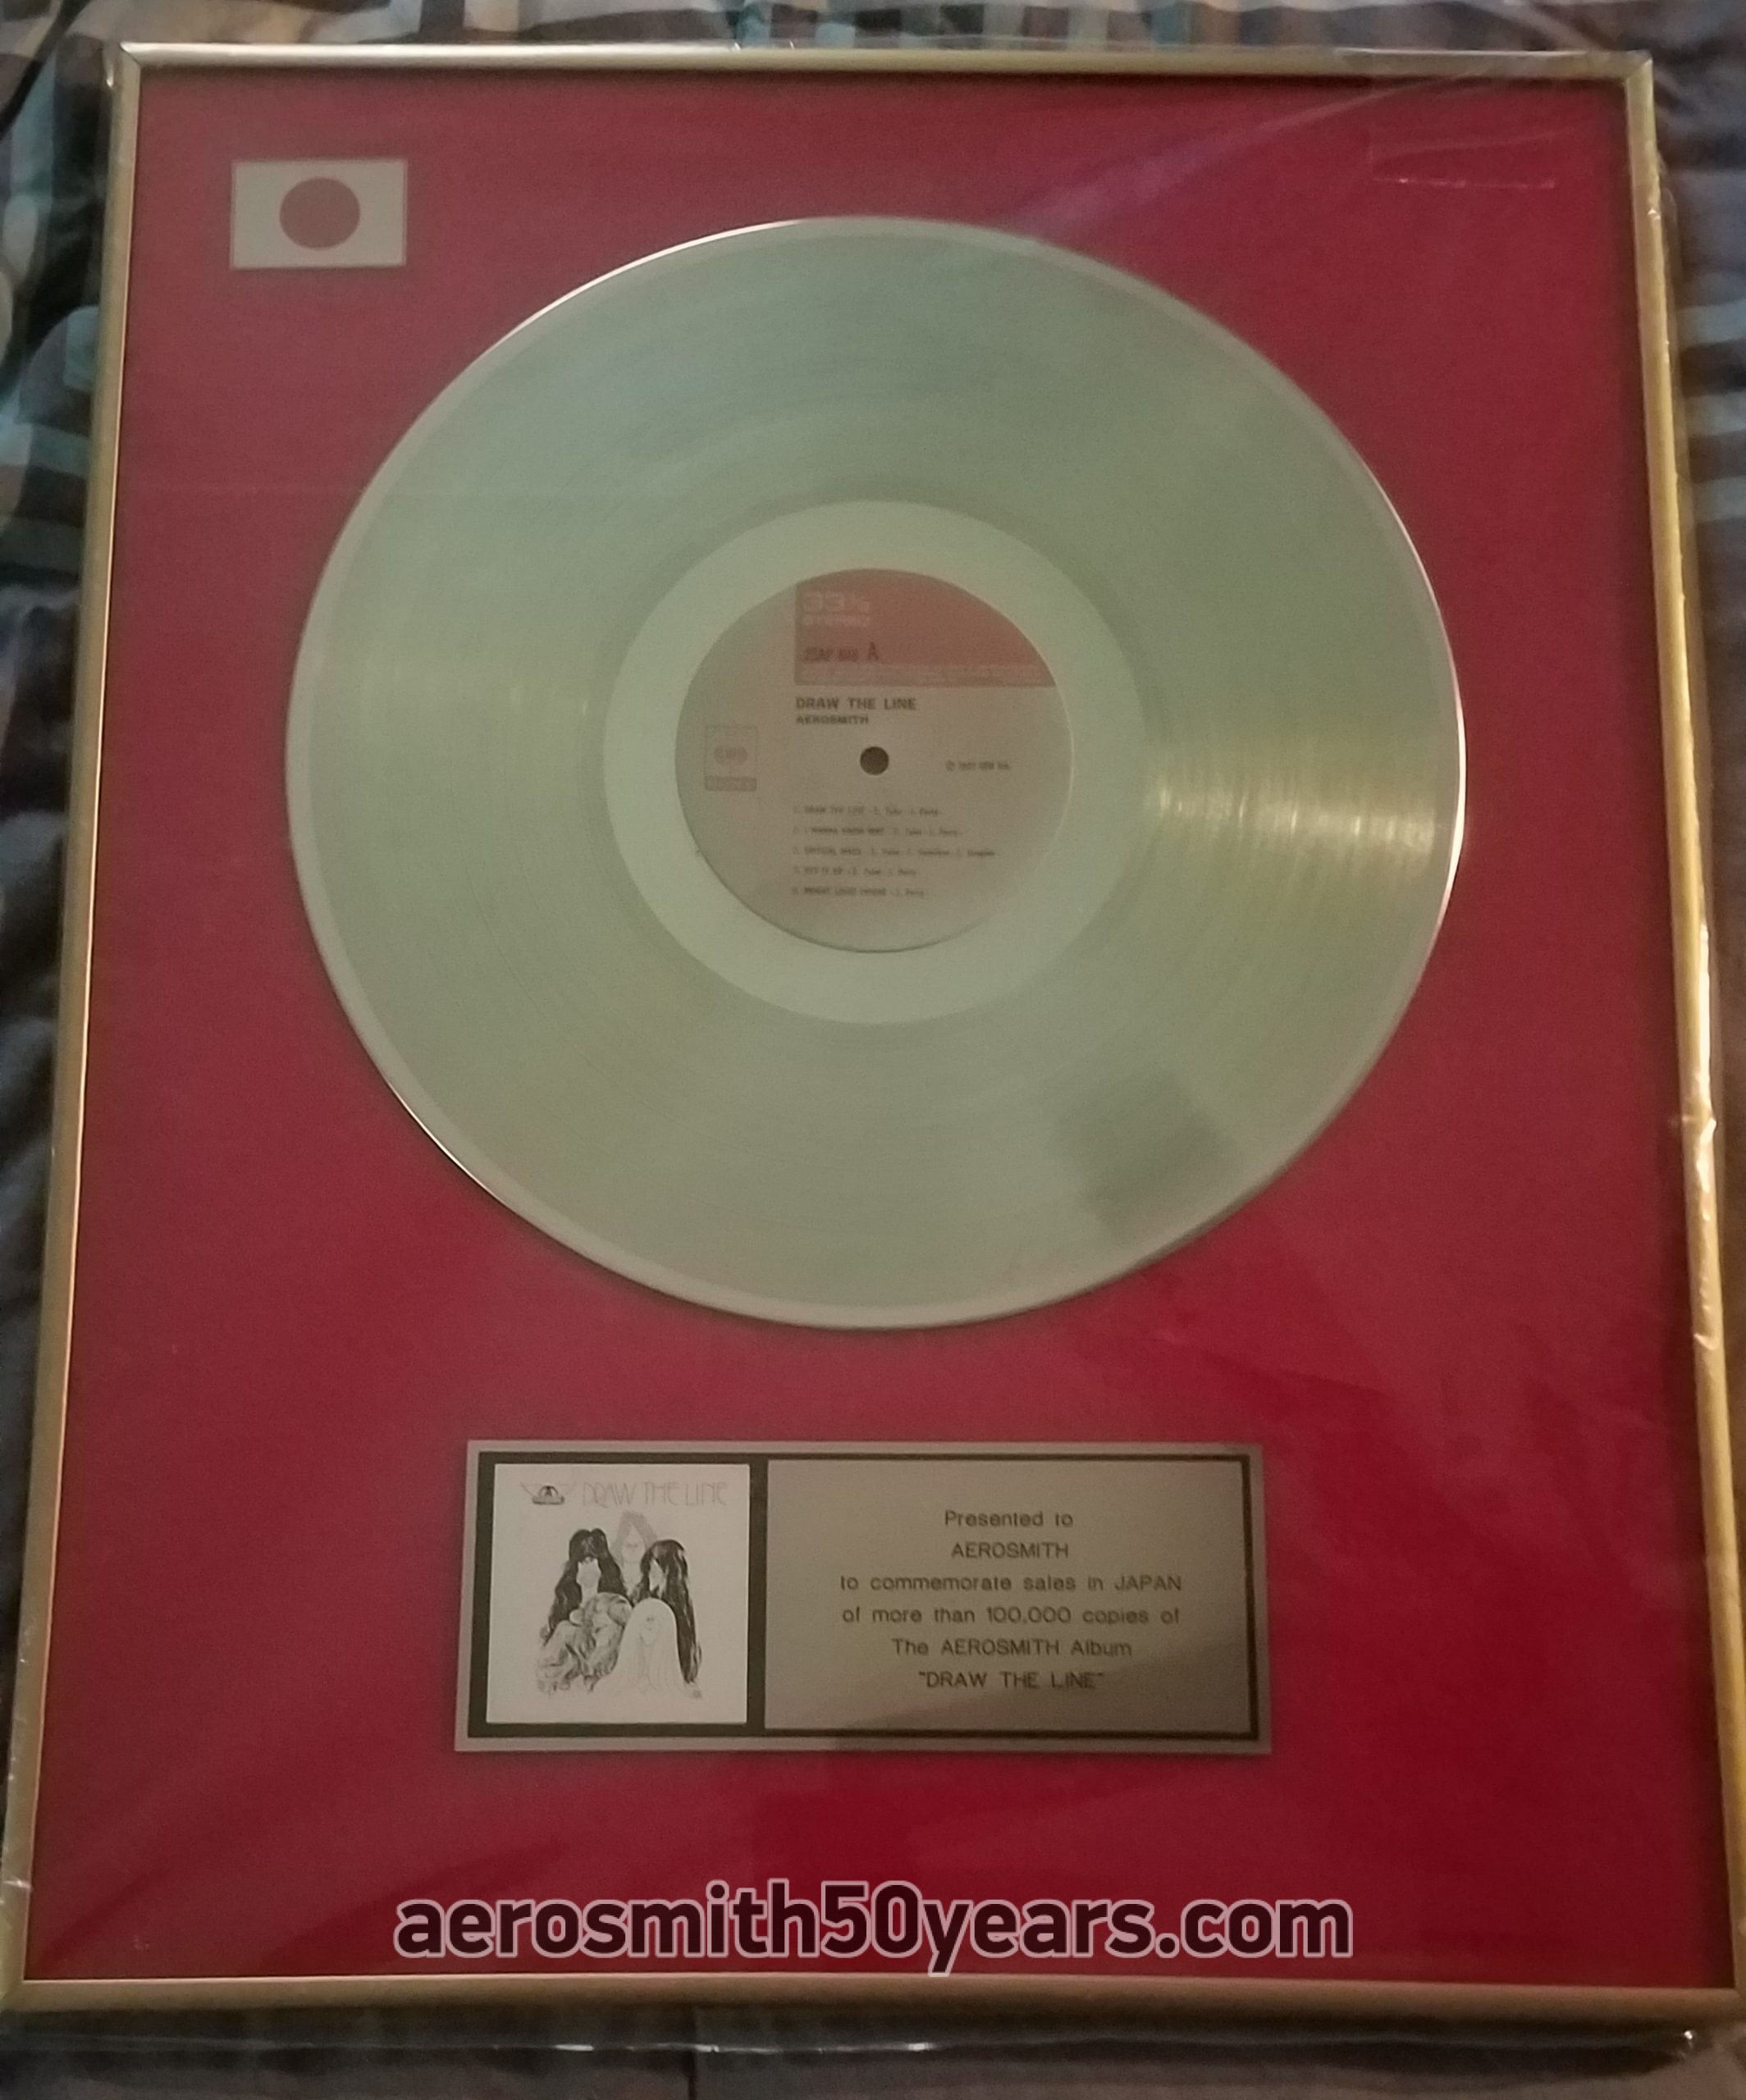 Draw The Line – Japan Record Award Presented To Aerosmith. This award came from the collection of former manager Tim Collins.